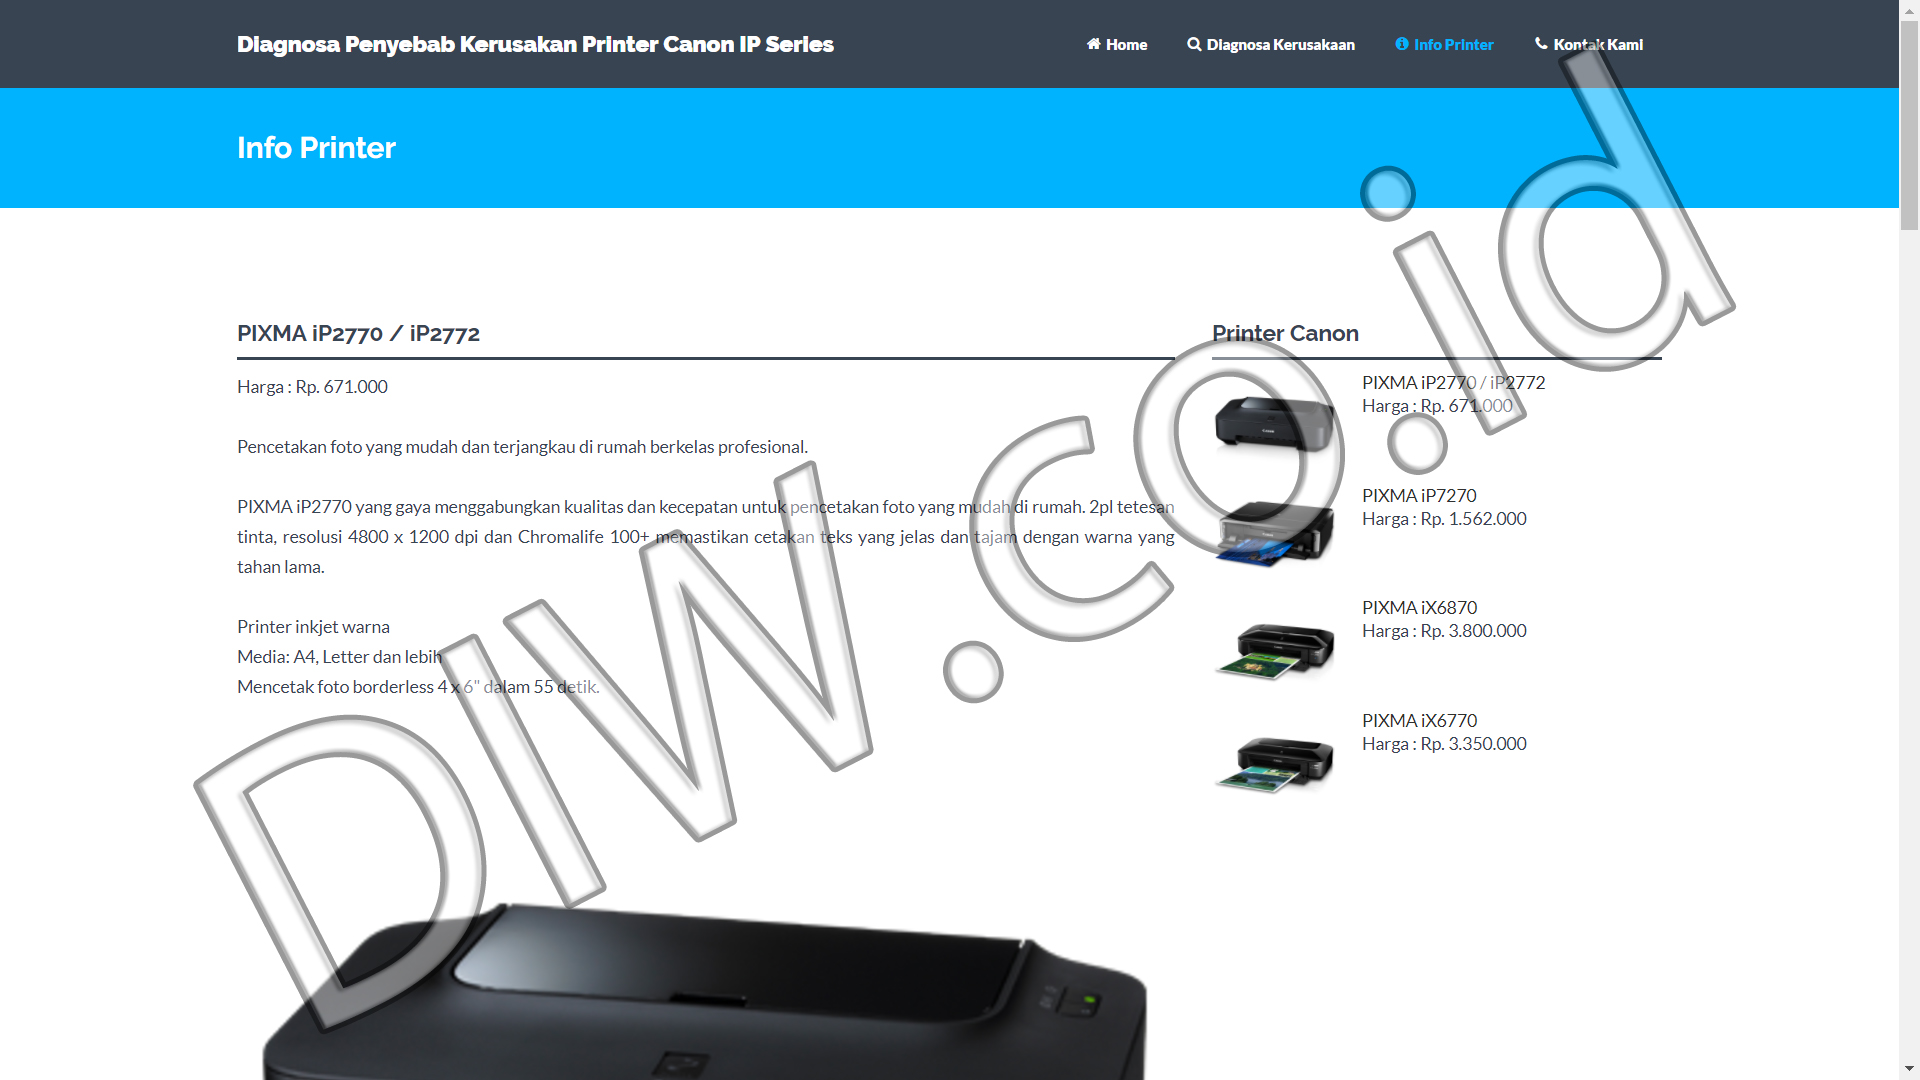 Portfolio 3 - Diagnosa Printer Canon IP Series - Andri Sunardi - Freelancer - Web Developer - CEO DIW.co.id